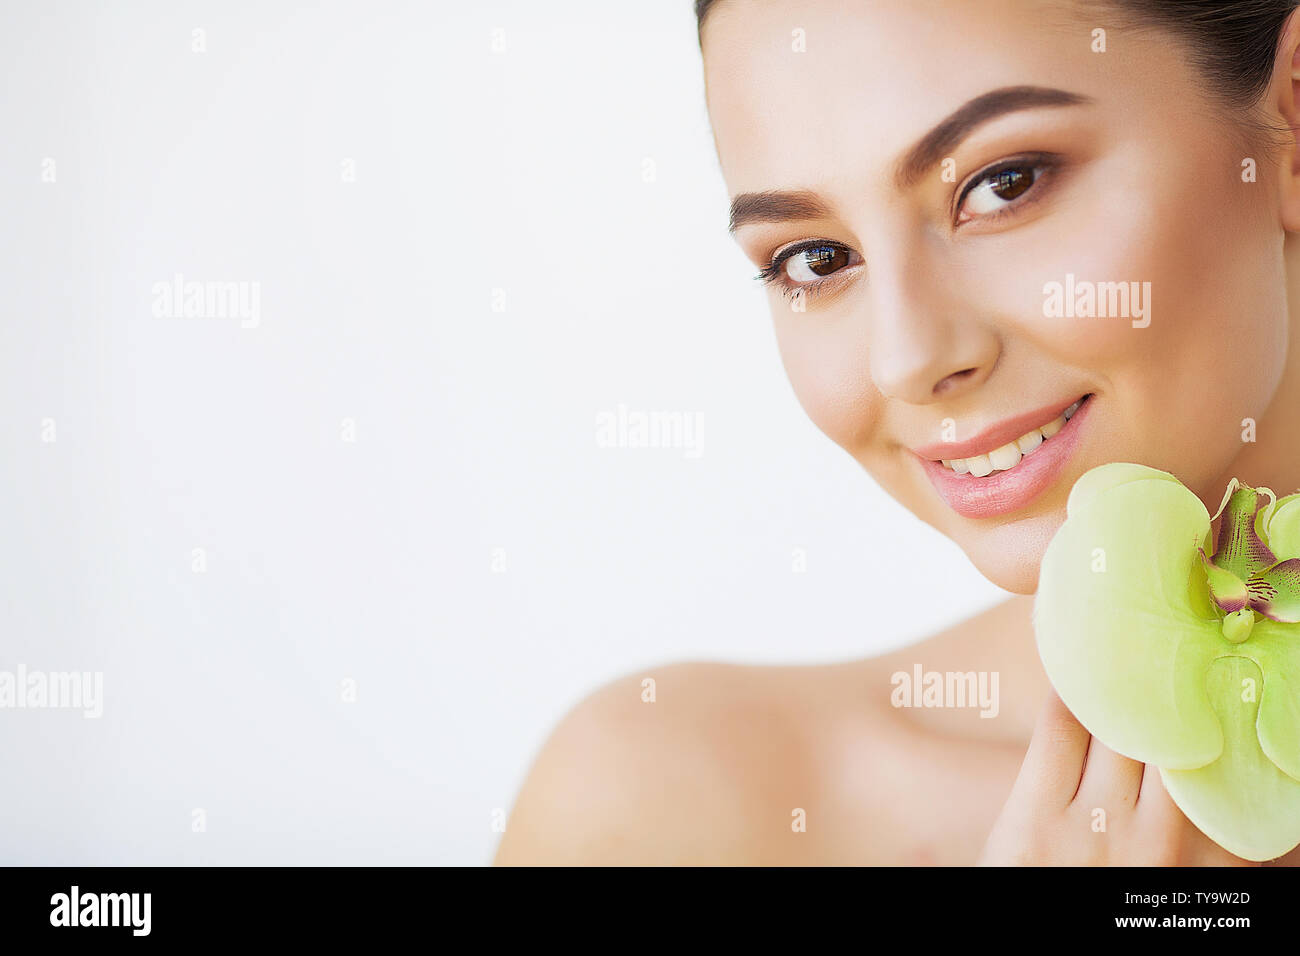 Skincare. Woman Beauty, Face Skin Care and Make Up, Girl Orchid Flower - Stock Image